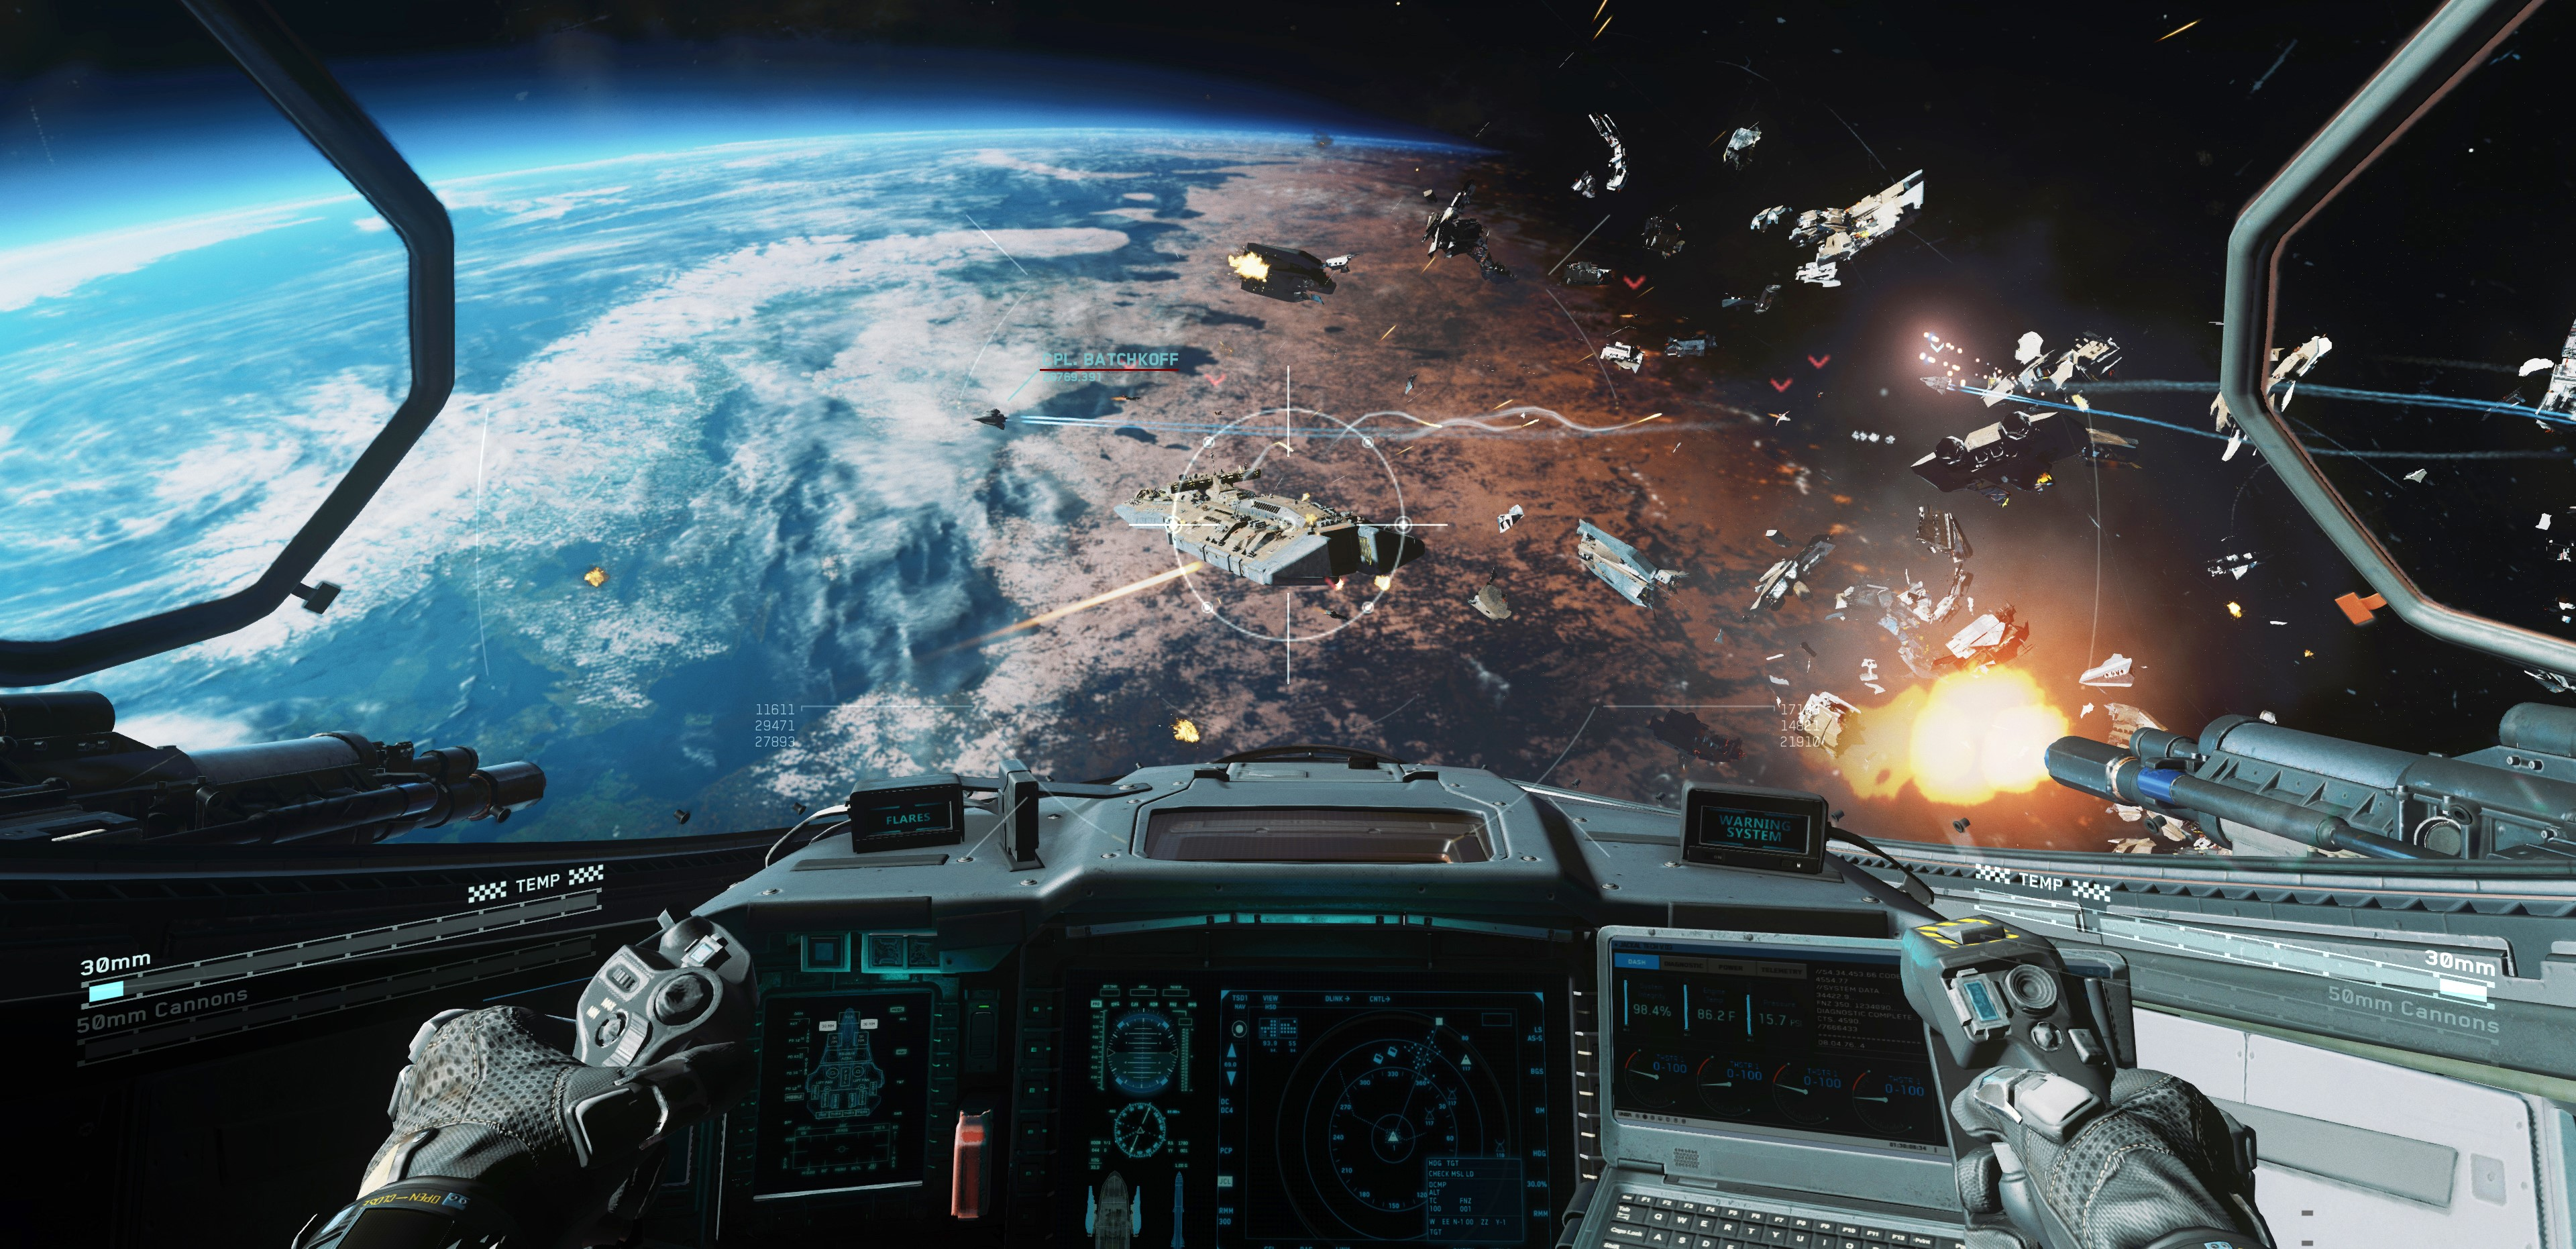 """Call of Duty: Infinite Warfare dramatically demonstrates """"Death is no disgrace"""""""